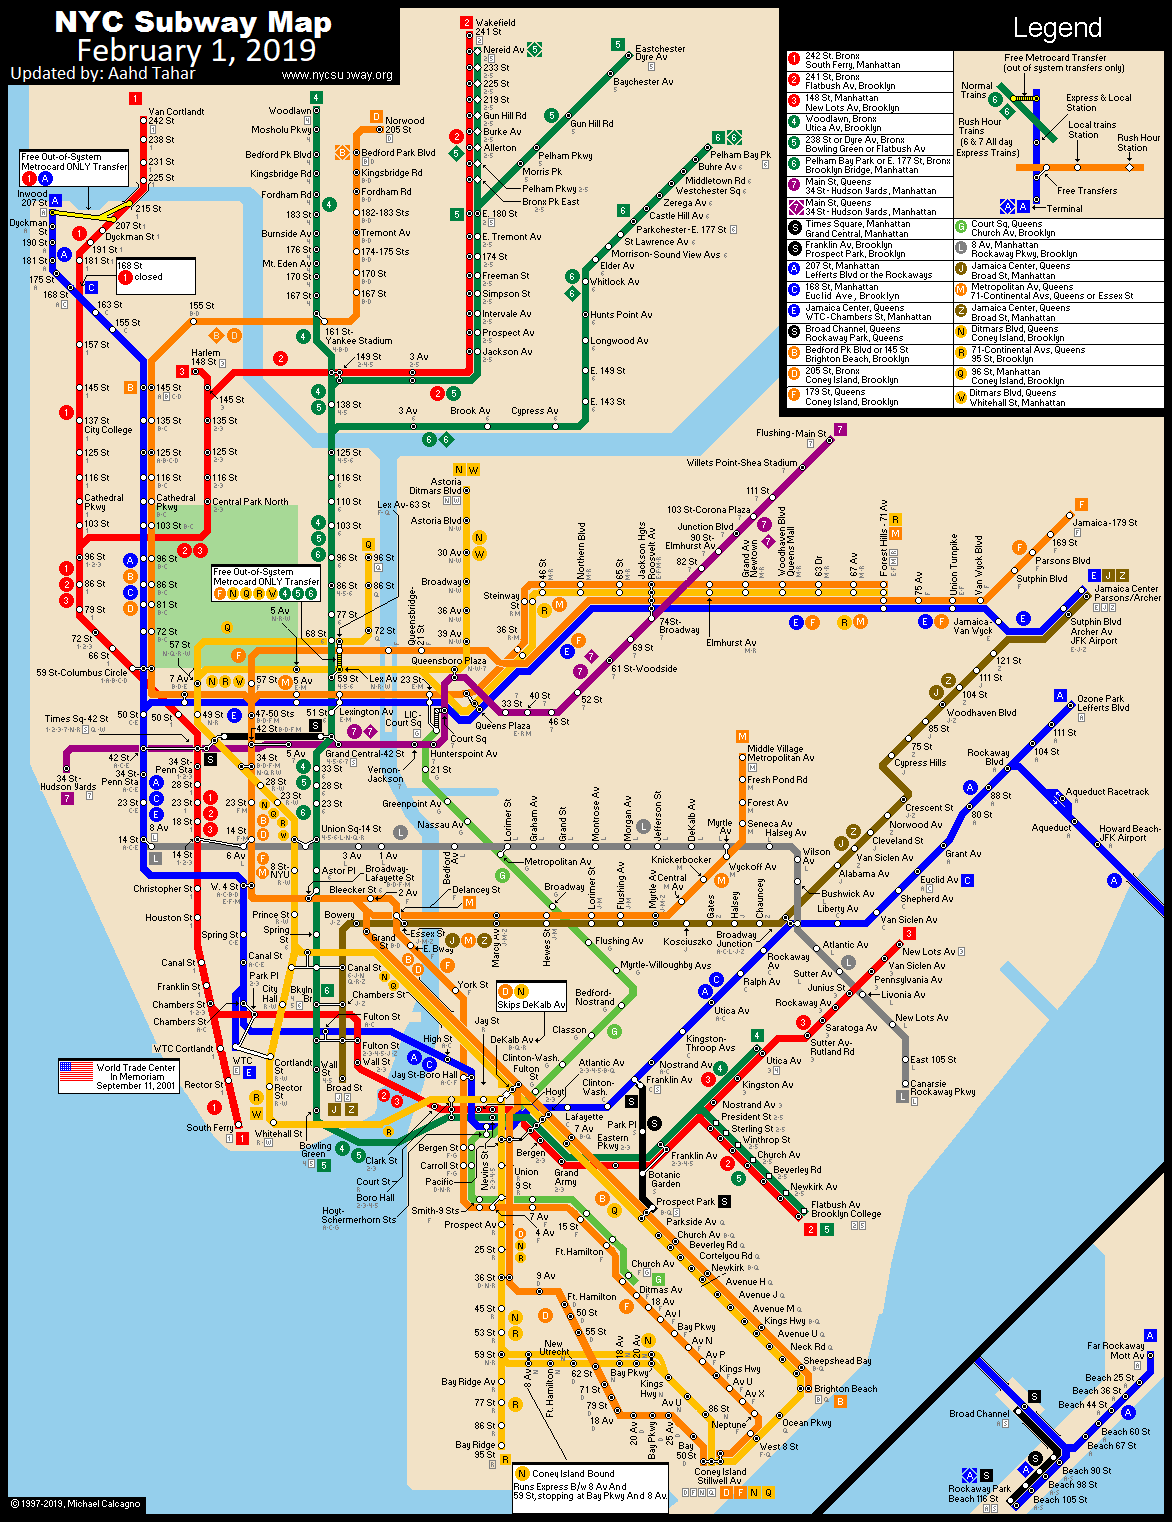 Ny Subway Map 7 Train.Www Nycsubway Org New York City Subway Route Map By Michael